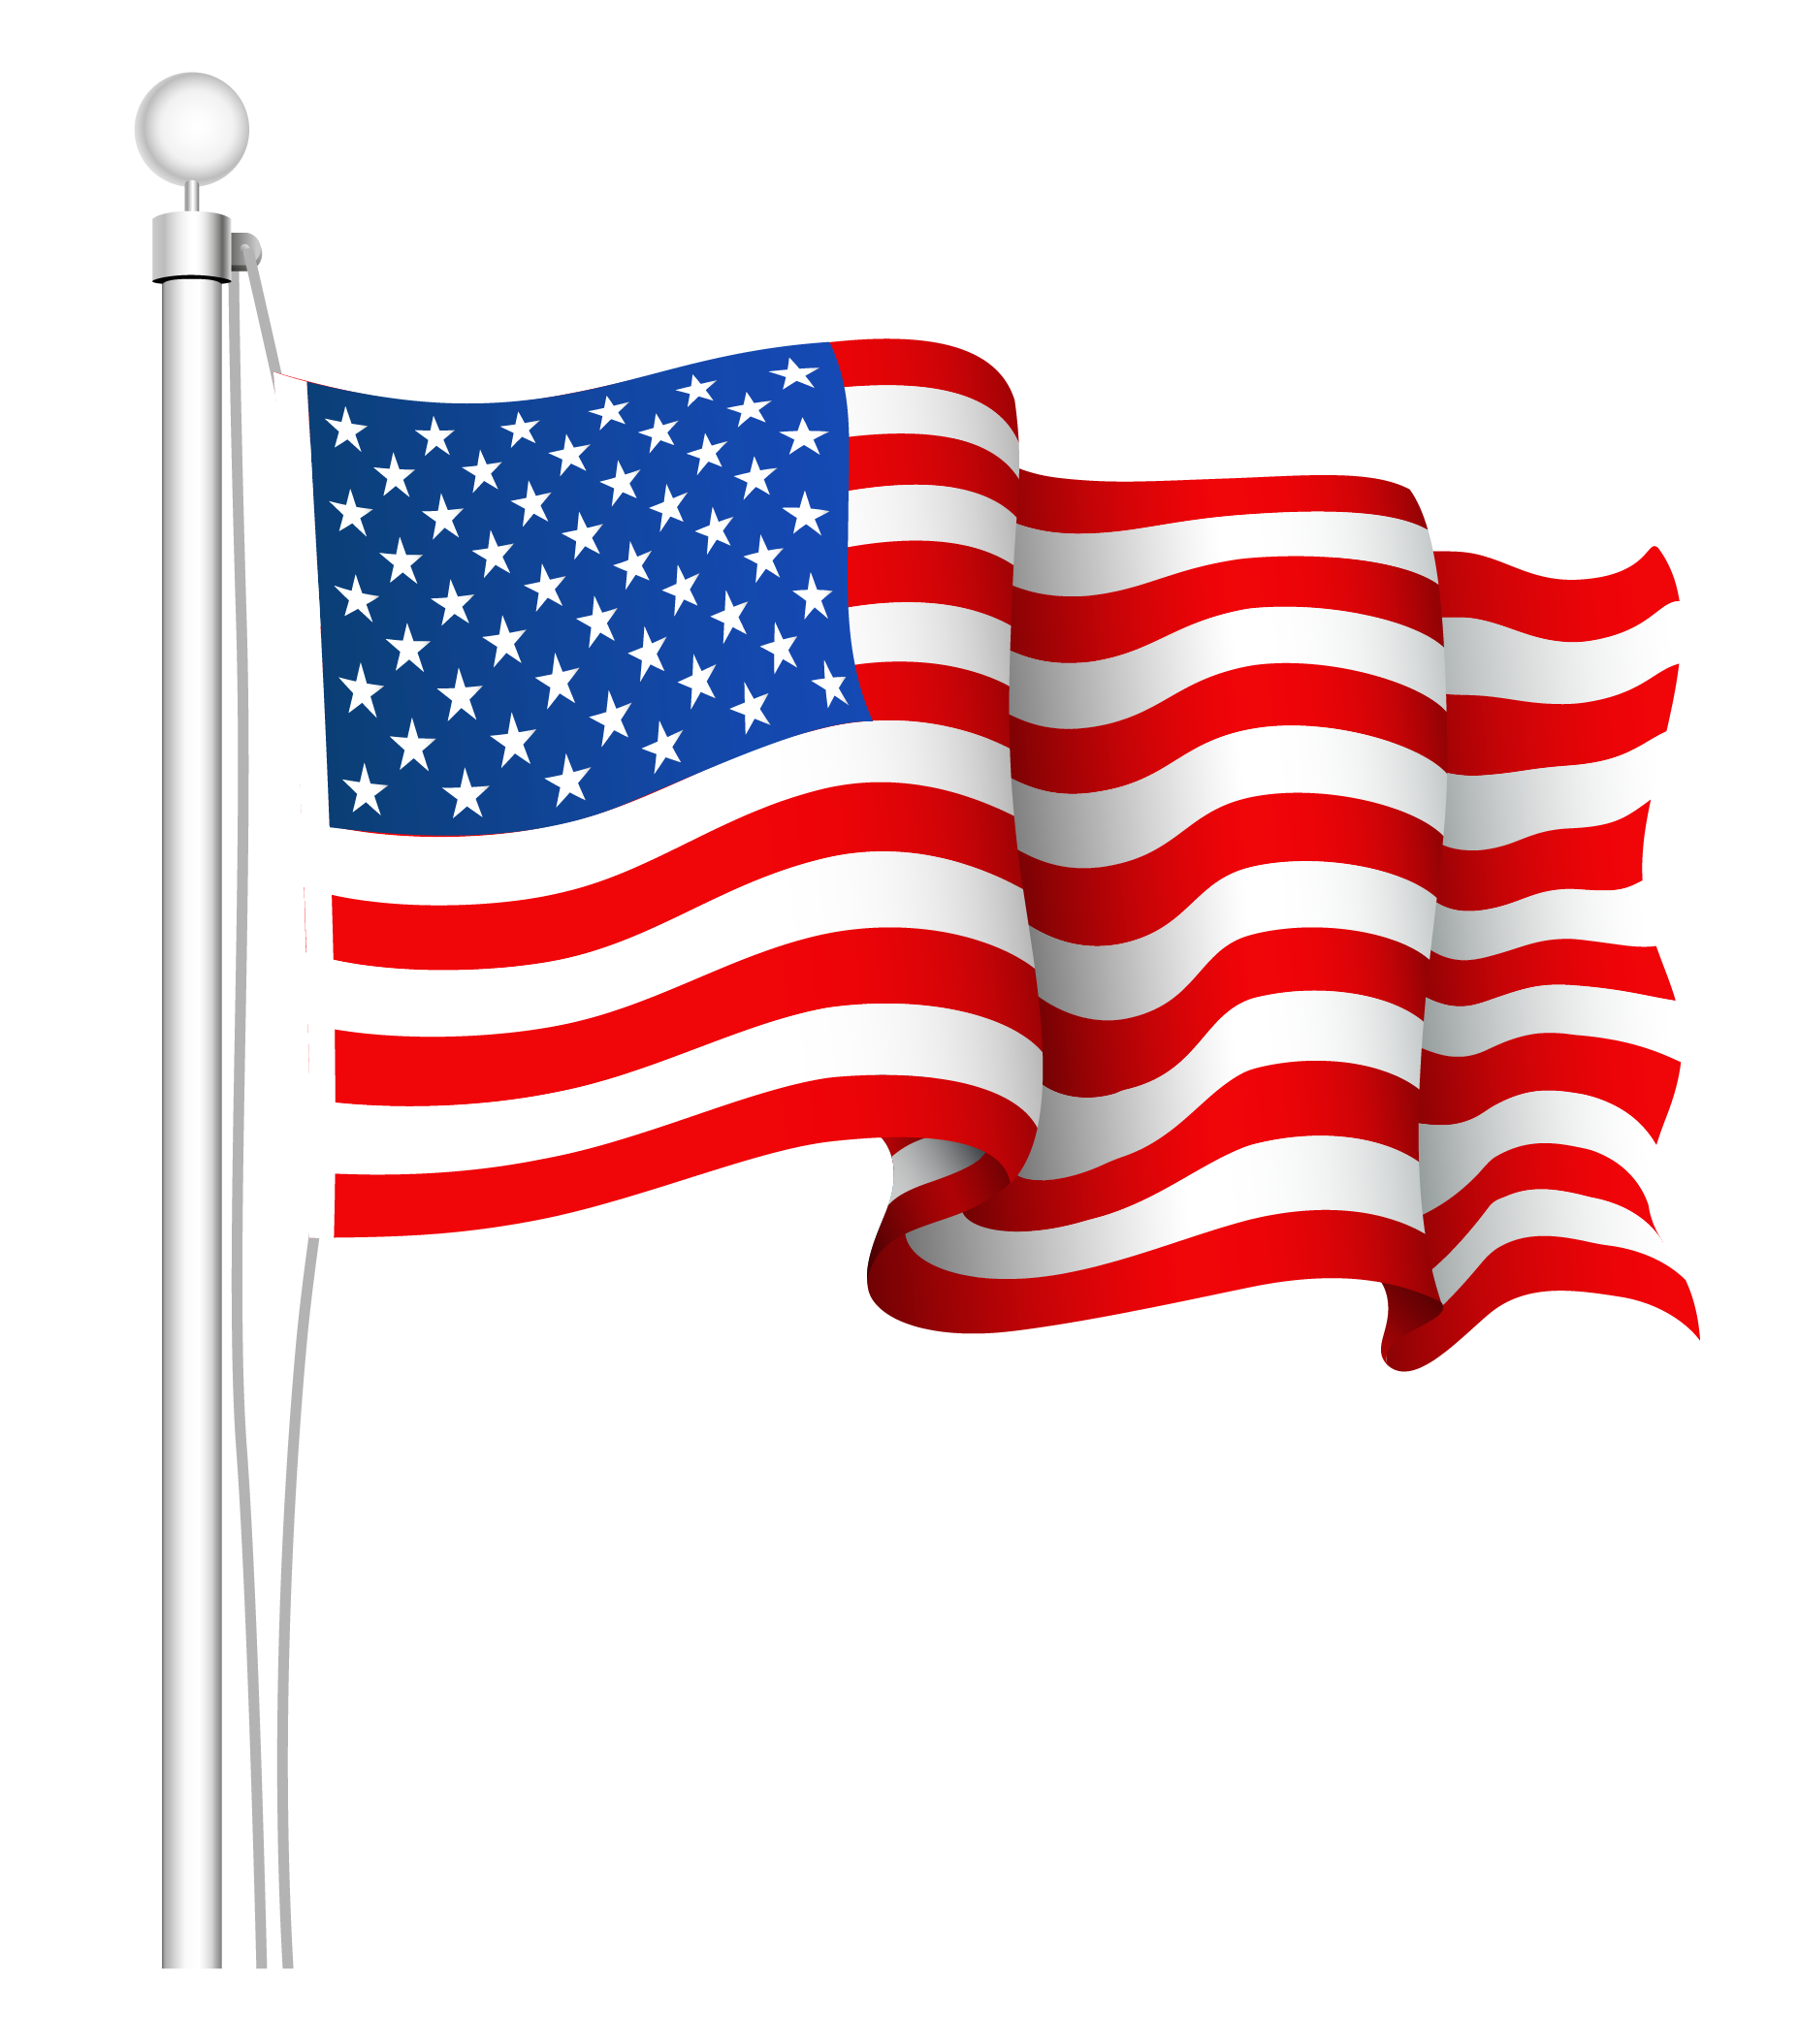 clipart flags - photo #12